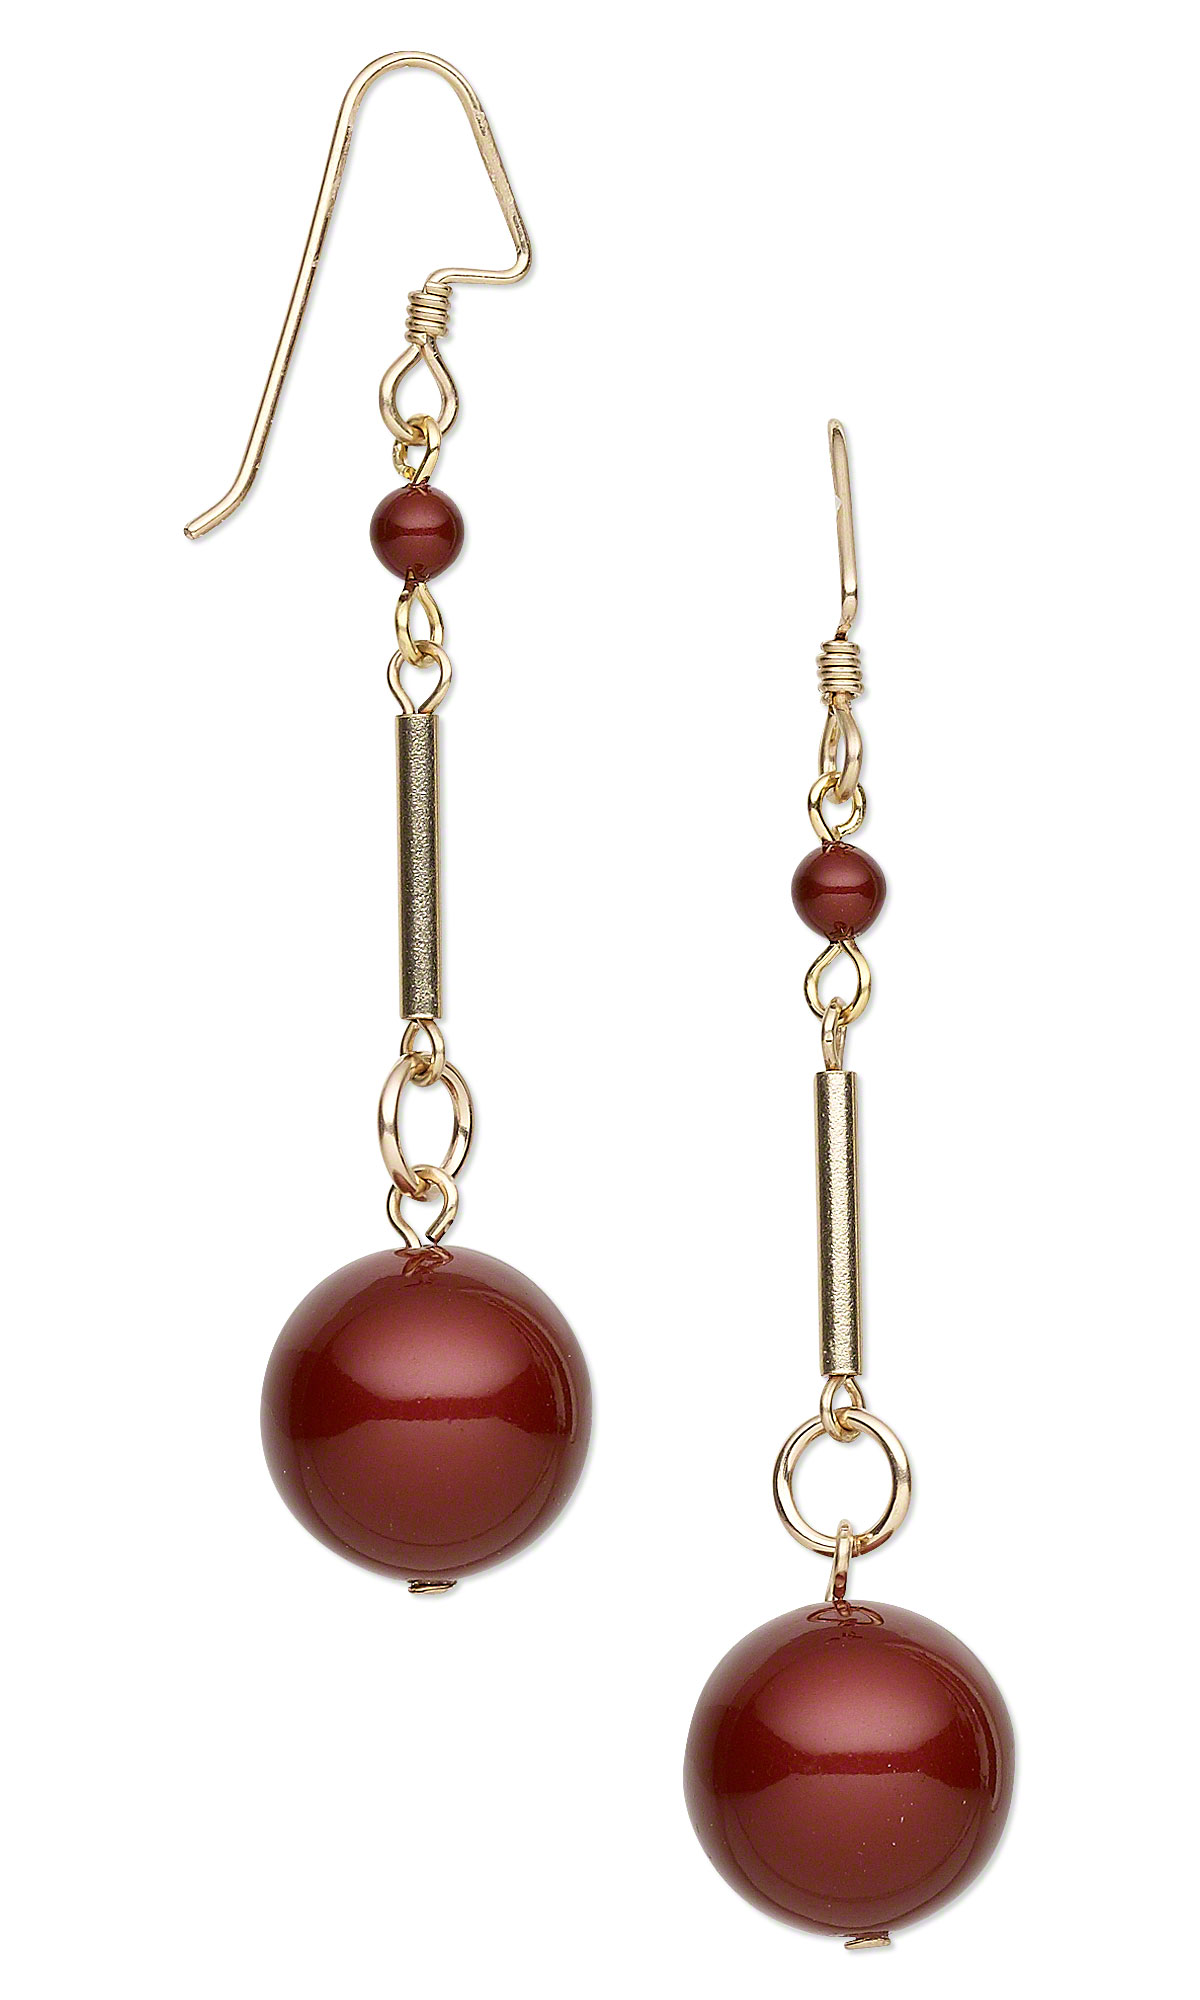 Jewelry Design Earrings With Swarovski Crystal Pearls